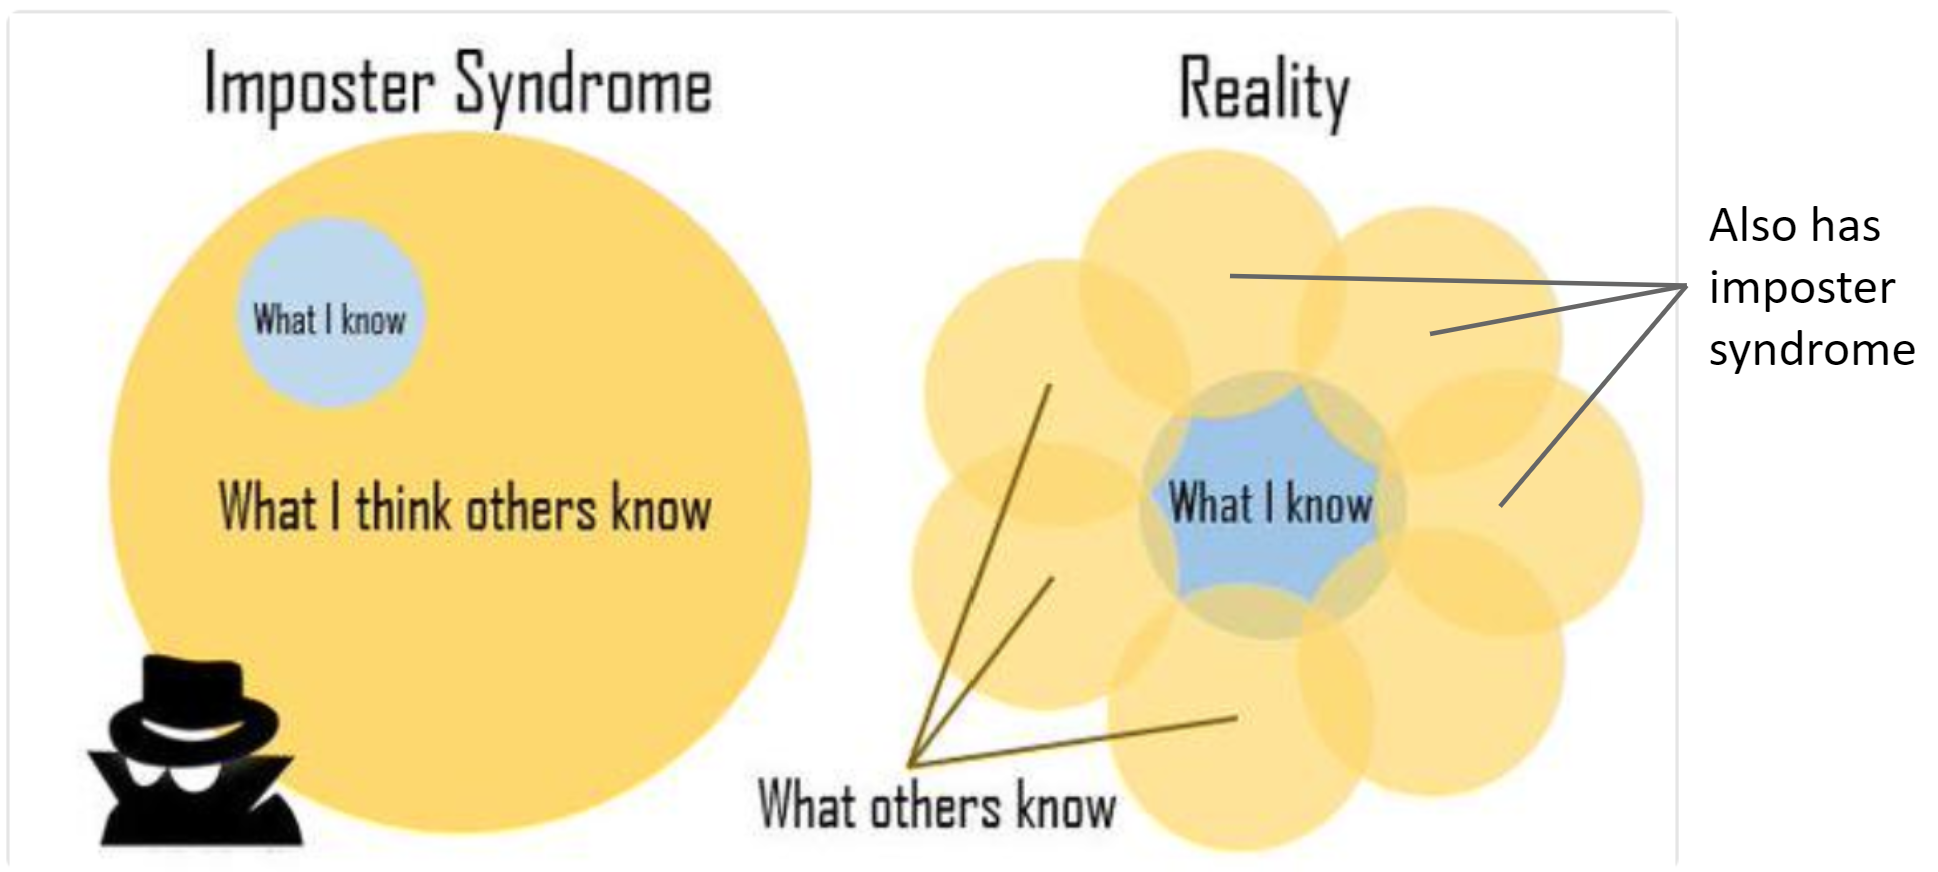 On the left, a small circle labelled 'What I know' sits inside a much larger one labelled 'What I think others know'. On the right, the small circle of 'What I know' is surrounded by others of similar size, each individually labelled 'What others know' and 'Also has imposter syndrome'.